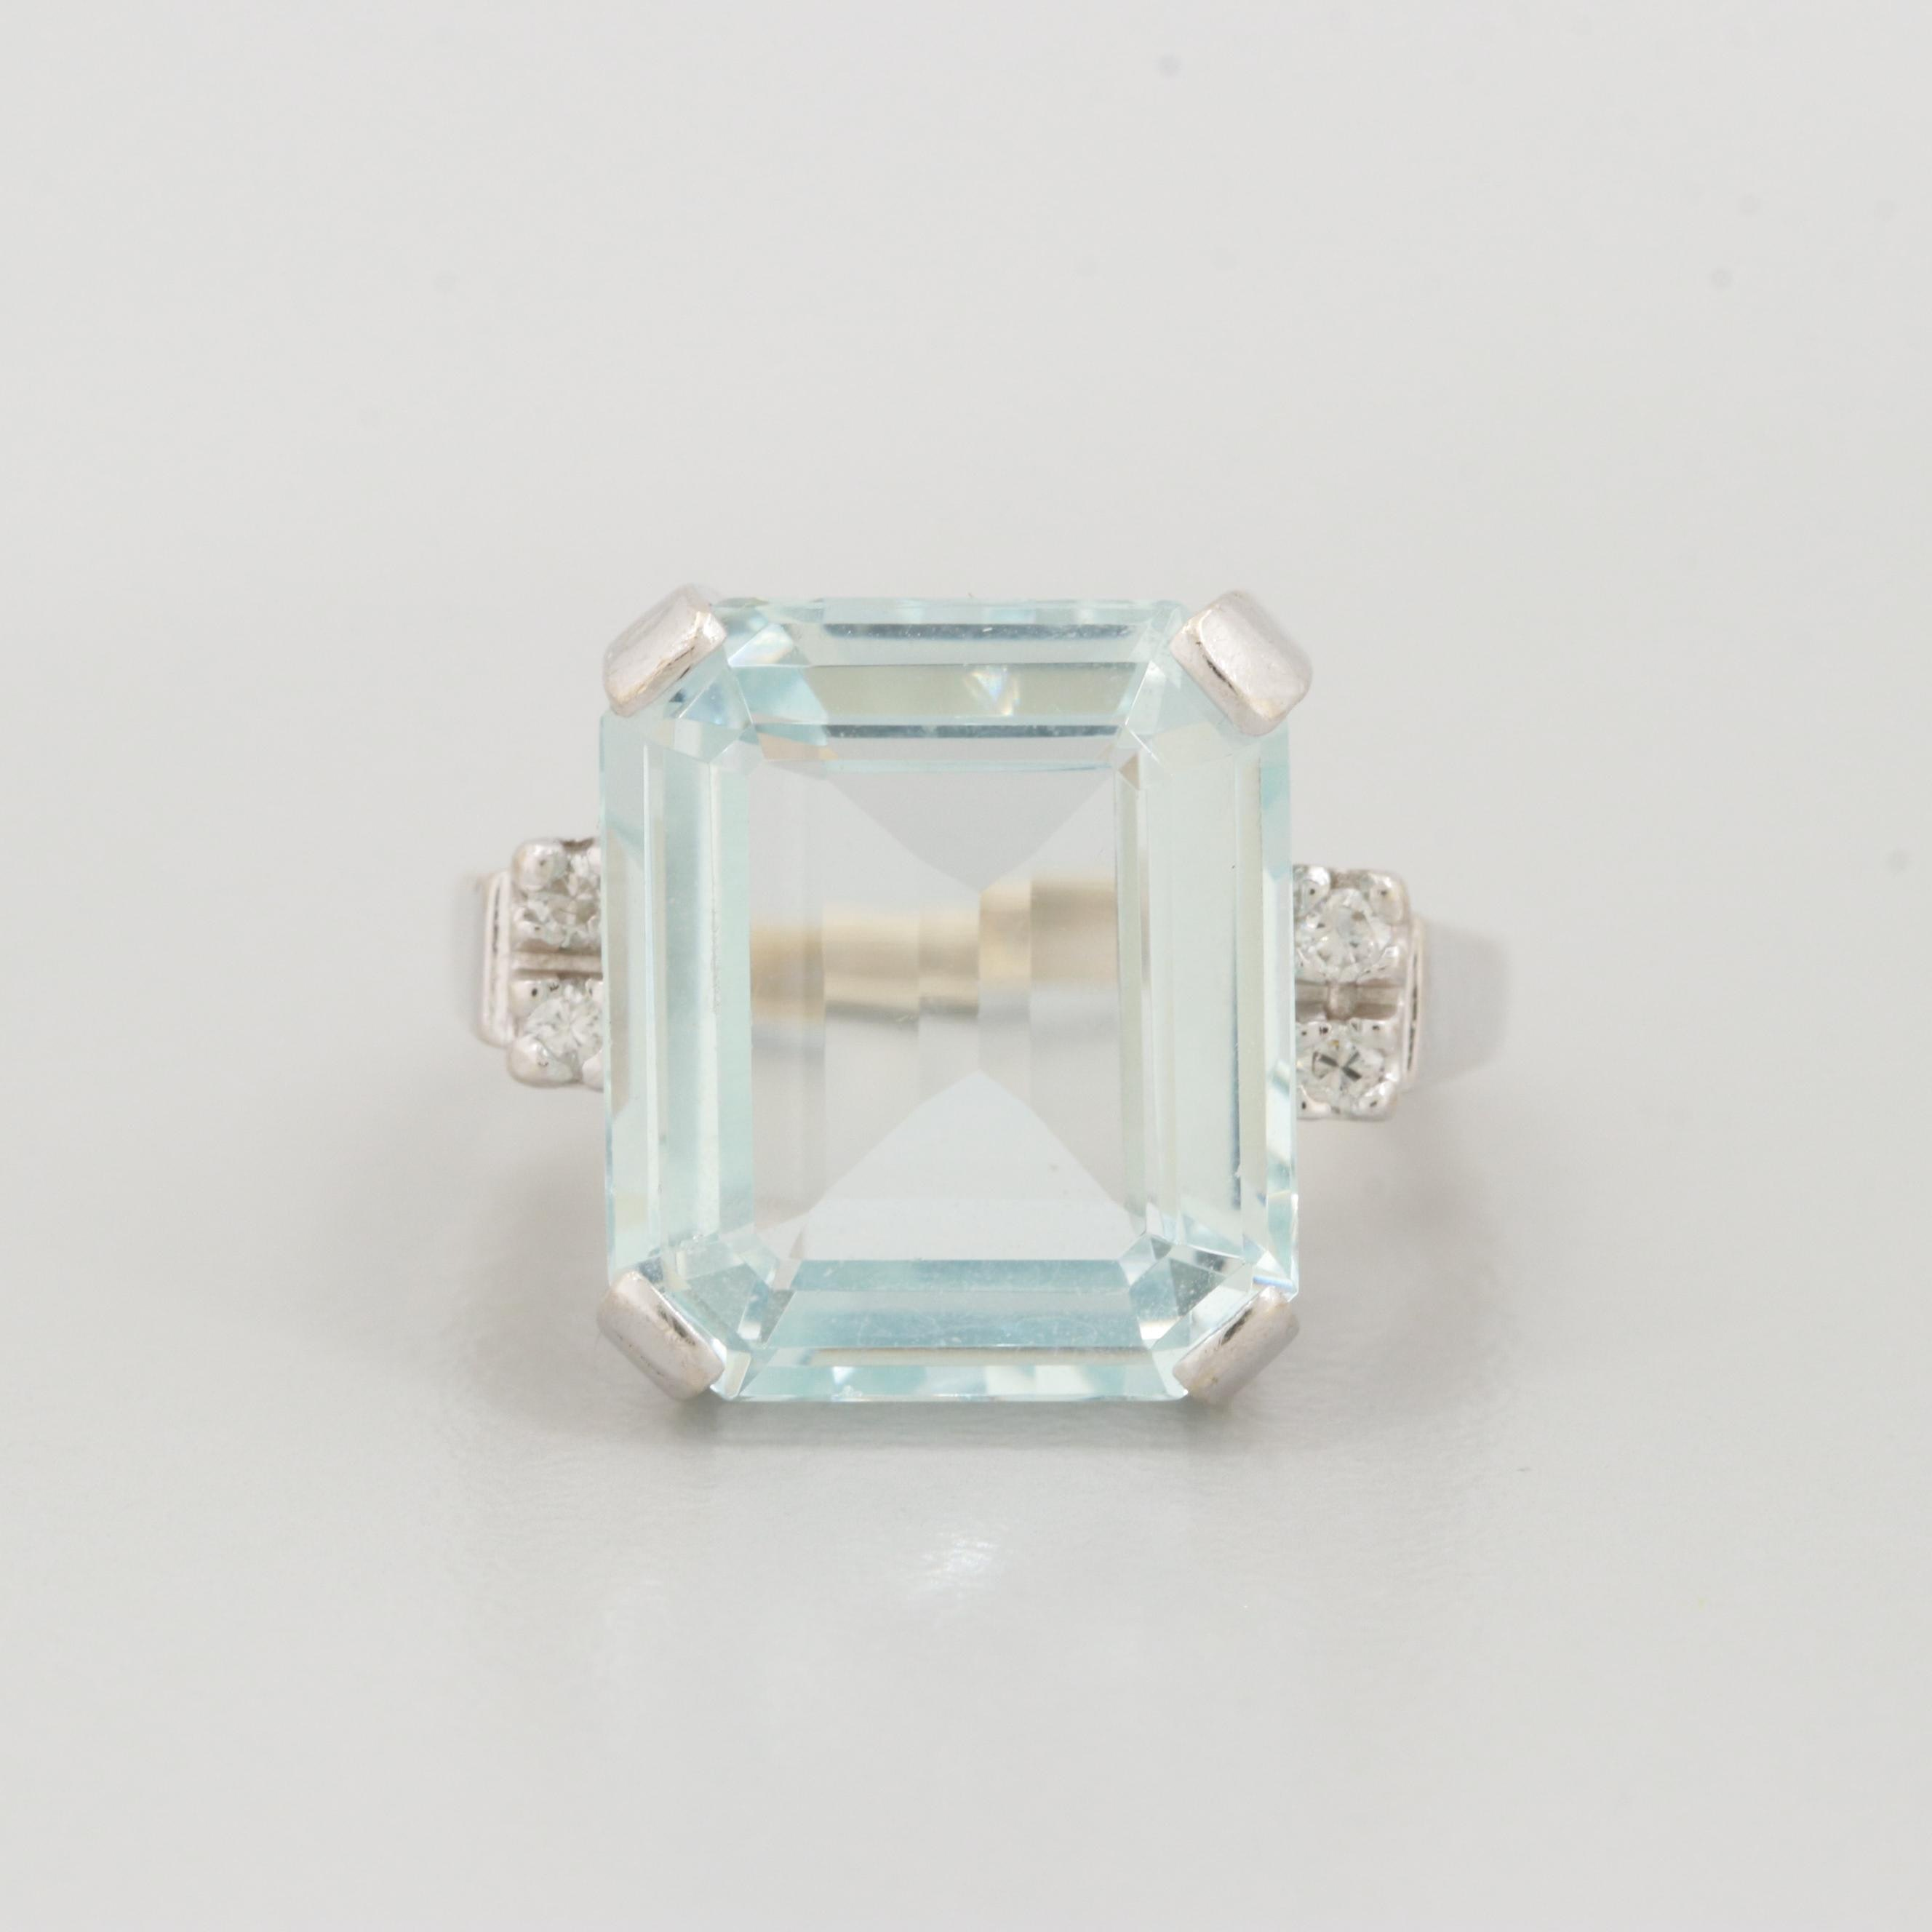 14K White Gold 7.61 CT Aquamarine and Diamond Ring